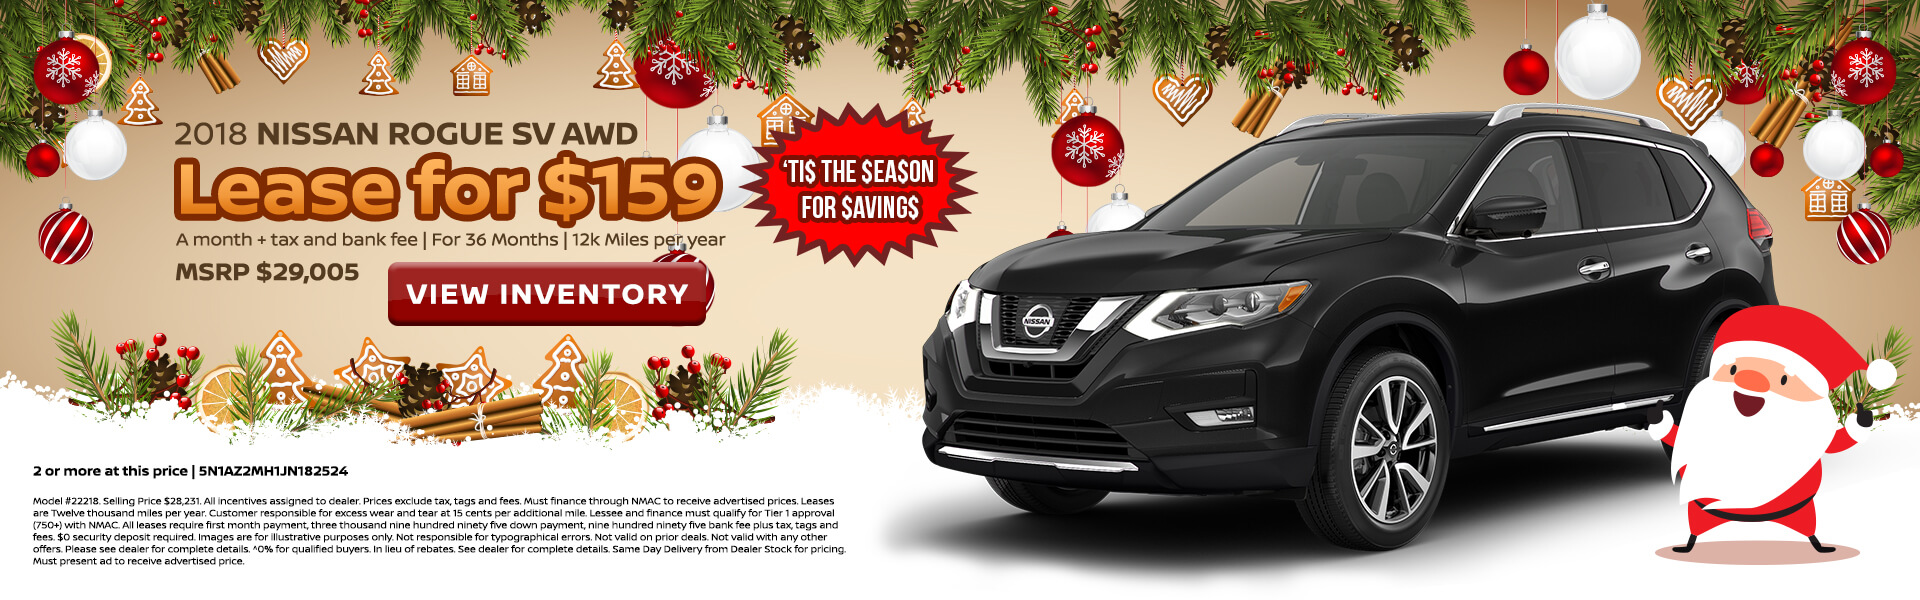 Nissan Rogue $159 Lease